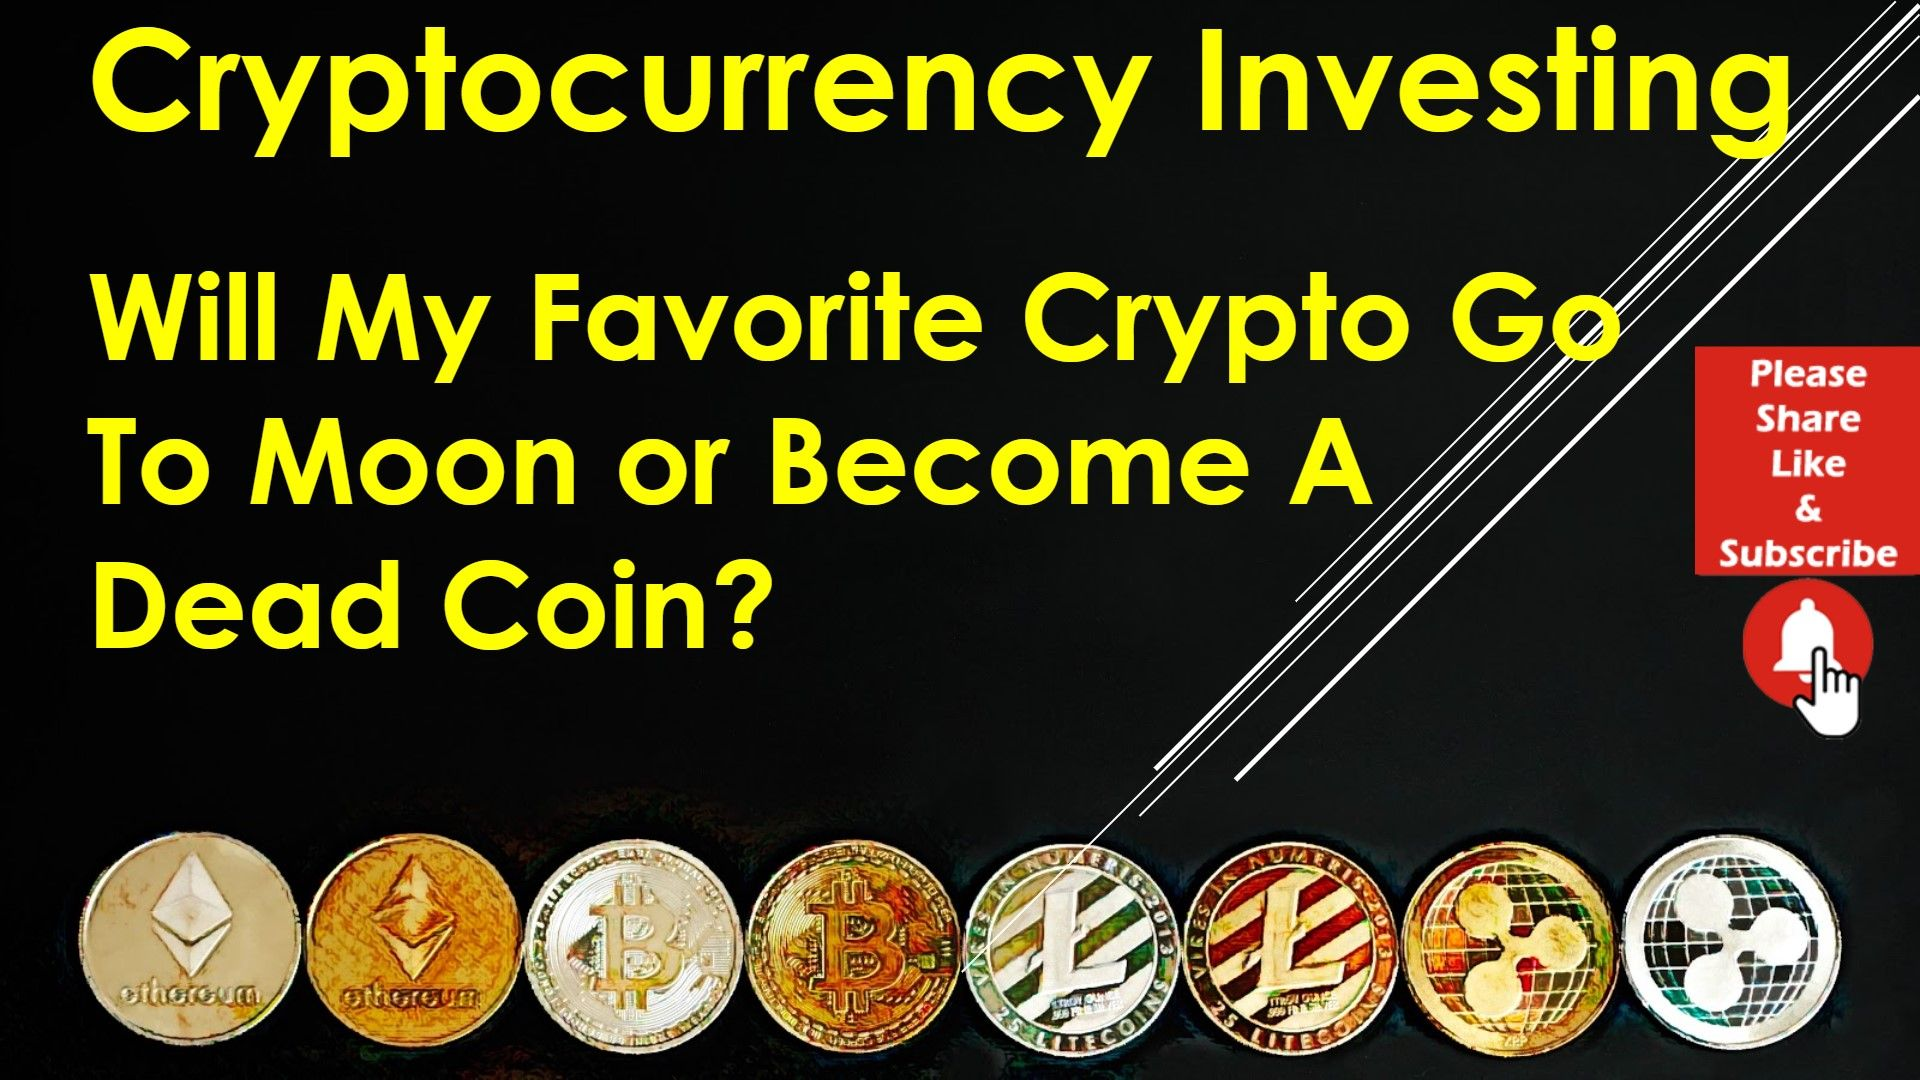 Cryptocurrency Investing Will My Favorite Crypto Go To Moon Or Become A Dead Coin Financial Planner Cryptocurrency Investing